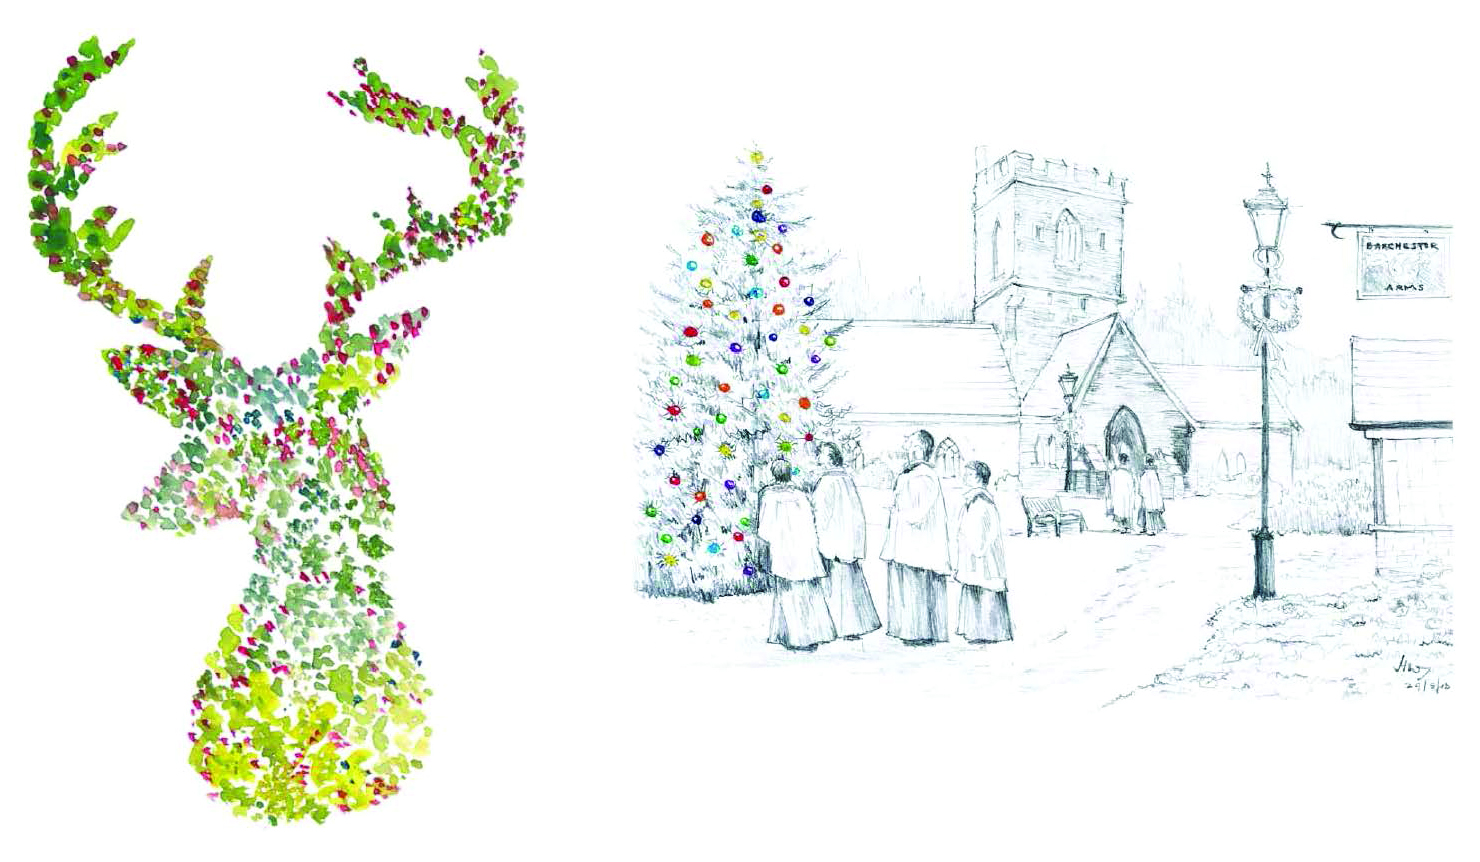 westlake house care home in horsham and white lodge care home in swindon have won the annual barchester healthcare christmas card competition 2013 with two